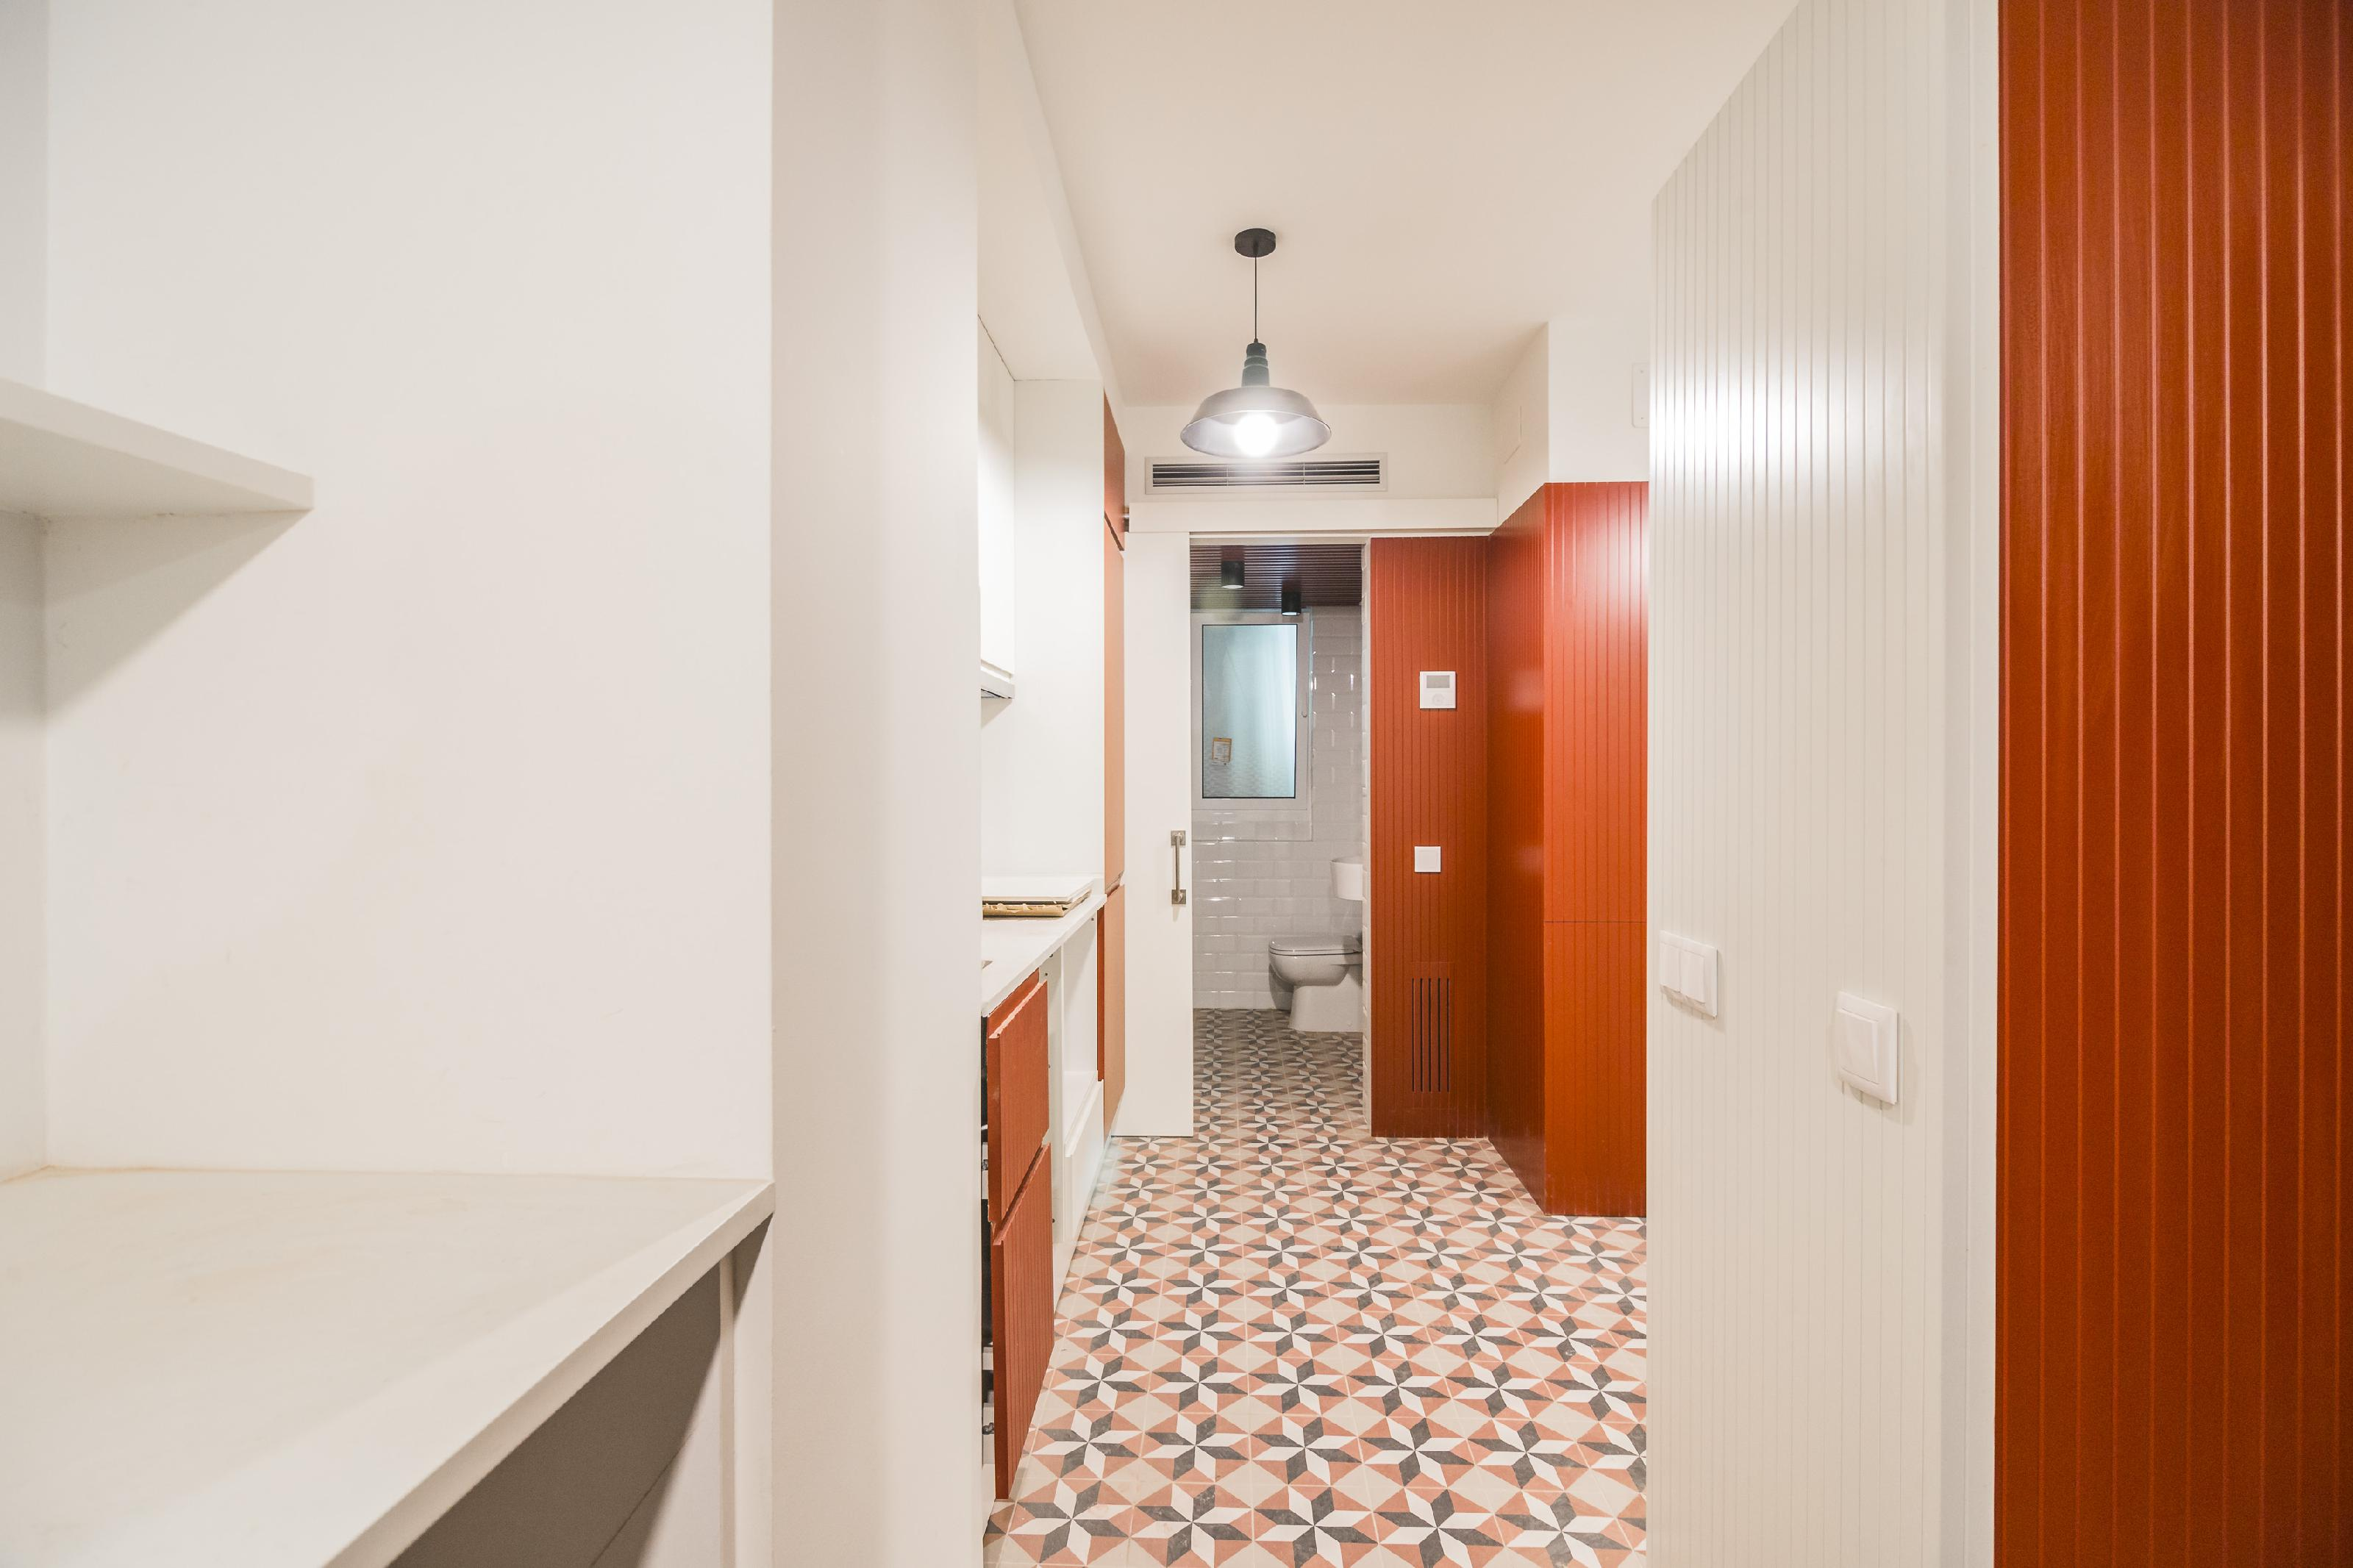 237520 Flat for sale in Ciutat Vella, St. Pere St. Caterina and La Ribera 28